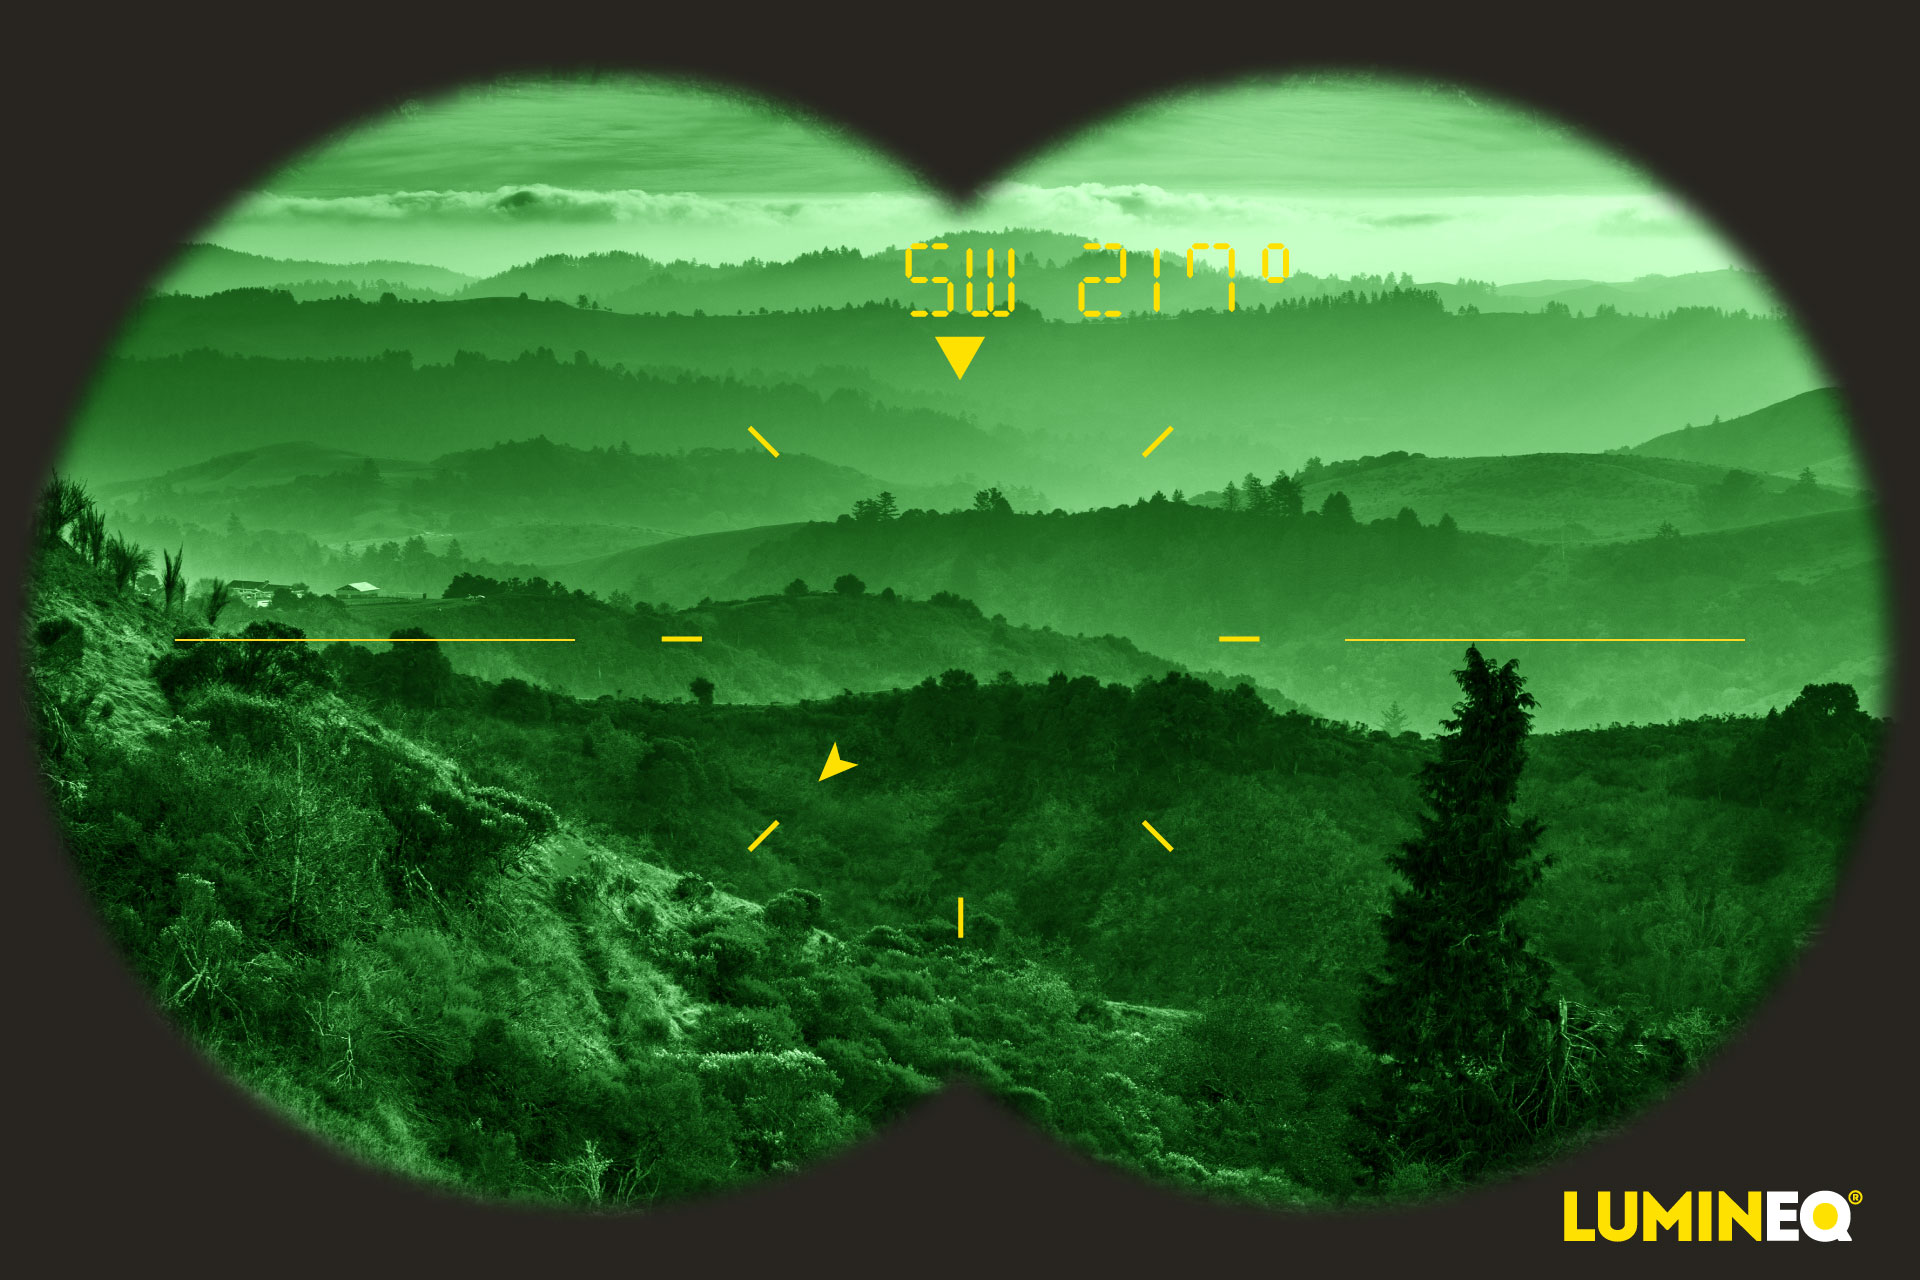 NVIS_Night_Vision_Goggles-Compass-Mountain-withLogo-1920x1280-2020-v02